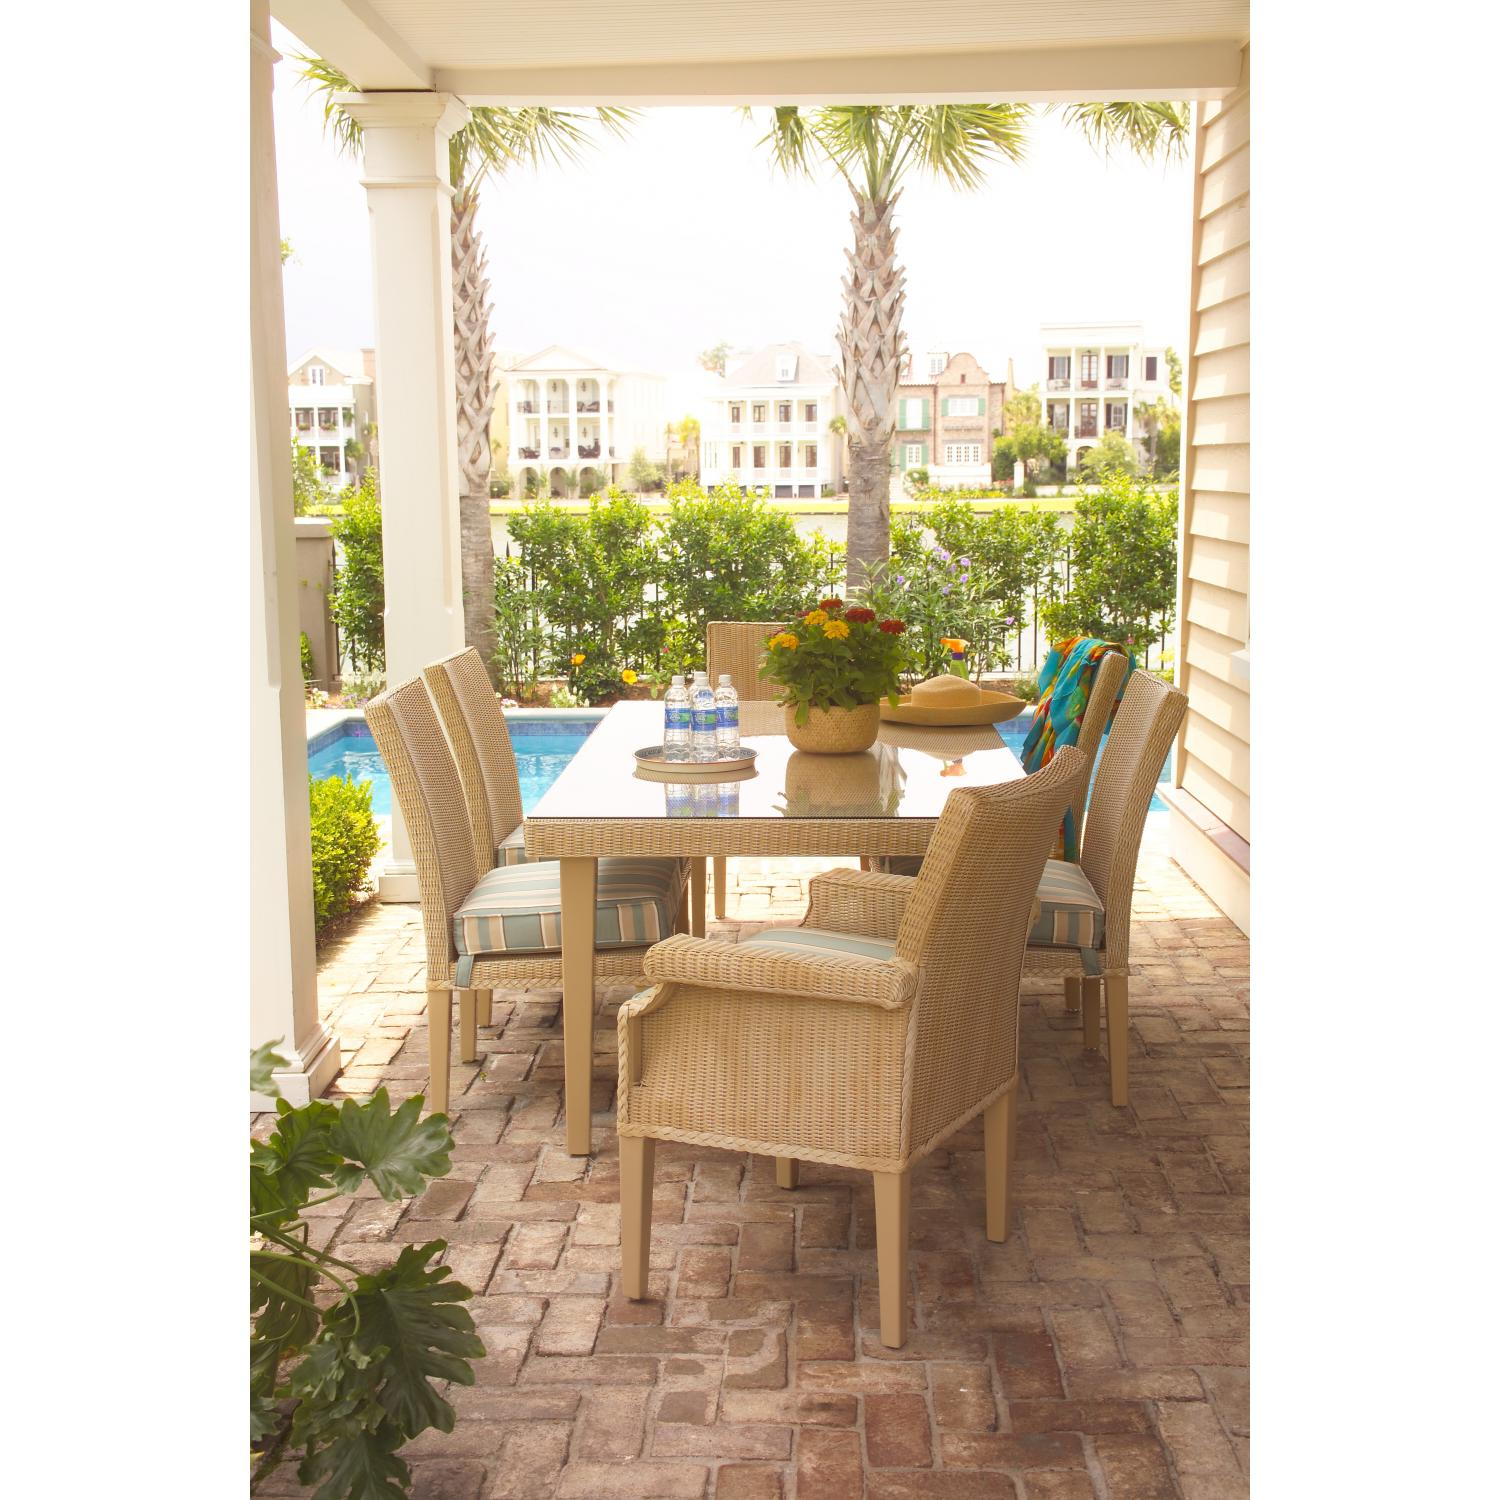 Lloyd Flanders Hamptons Lloyd Loom Wicker Outdoor Patio Dining Set - Antique Khaki Finish